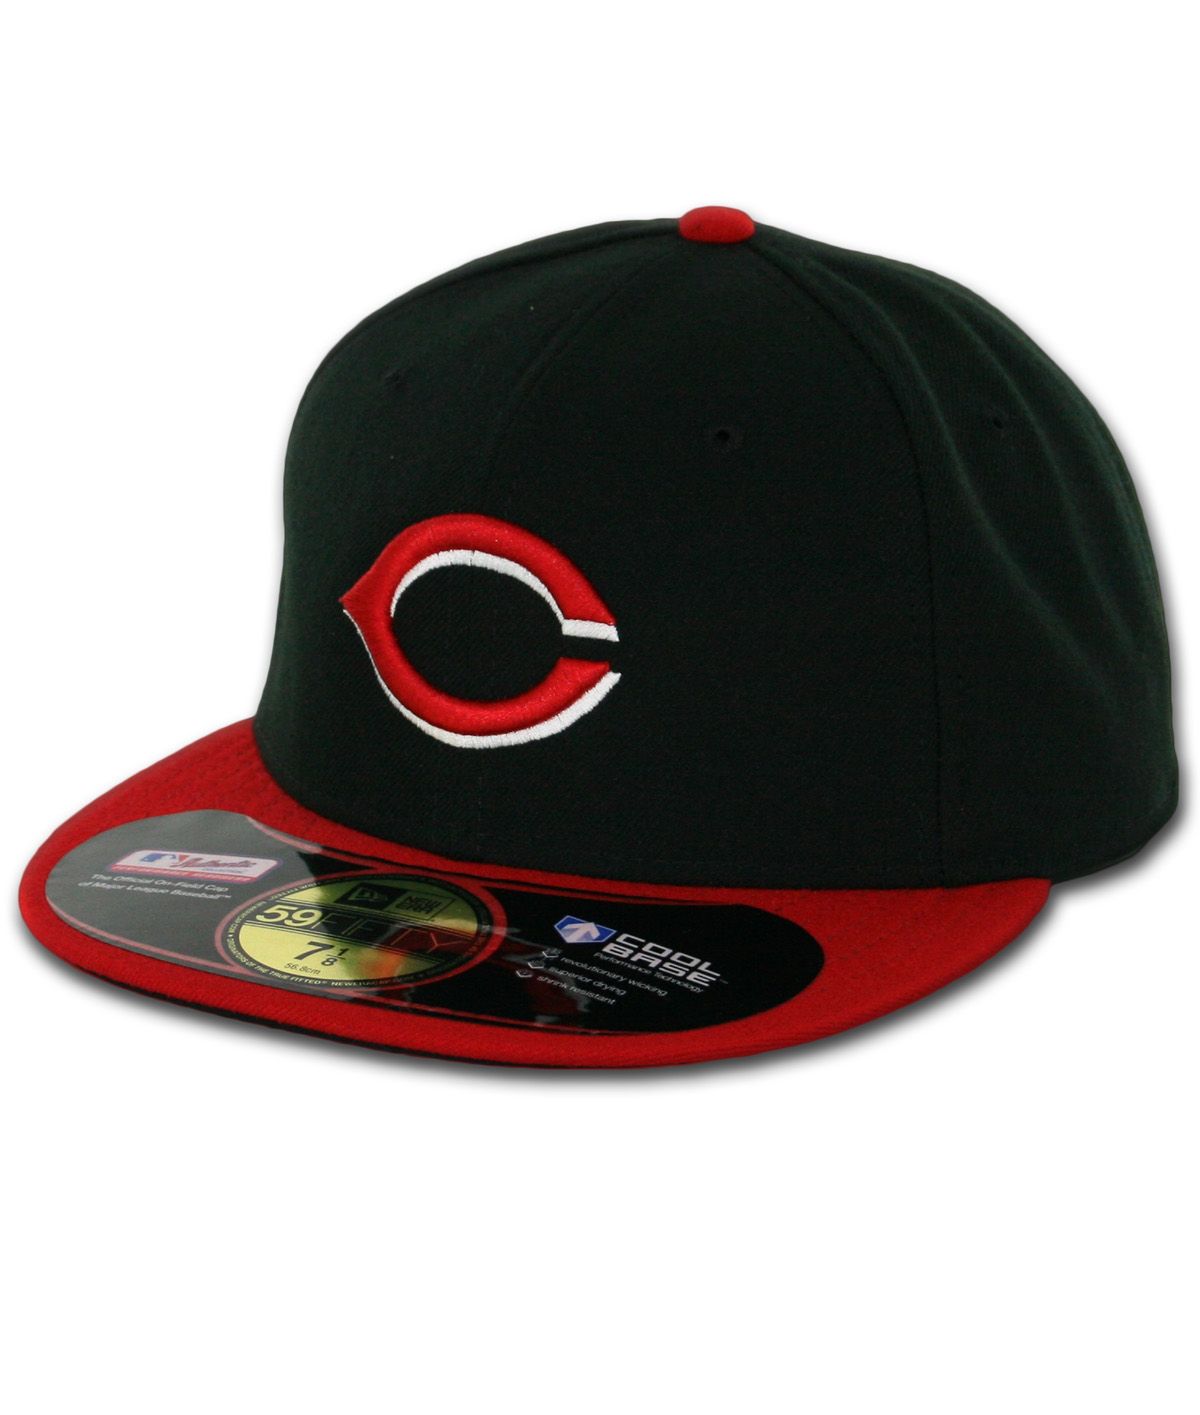 outlet store 79a0f dc5fe New Era 59Fifty Cincinnati Reds 2016 Alternate Authentic On Field Fitted Hat